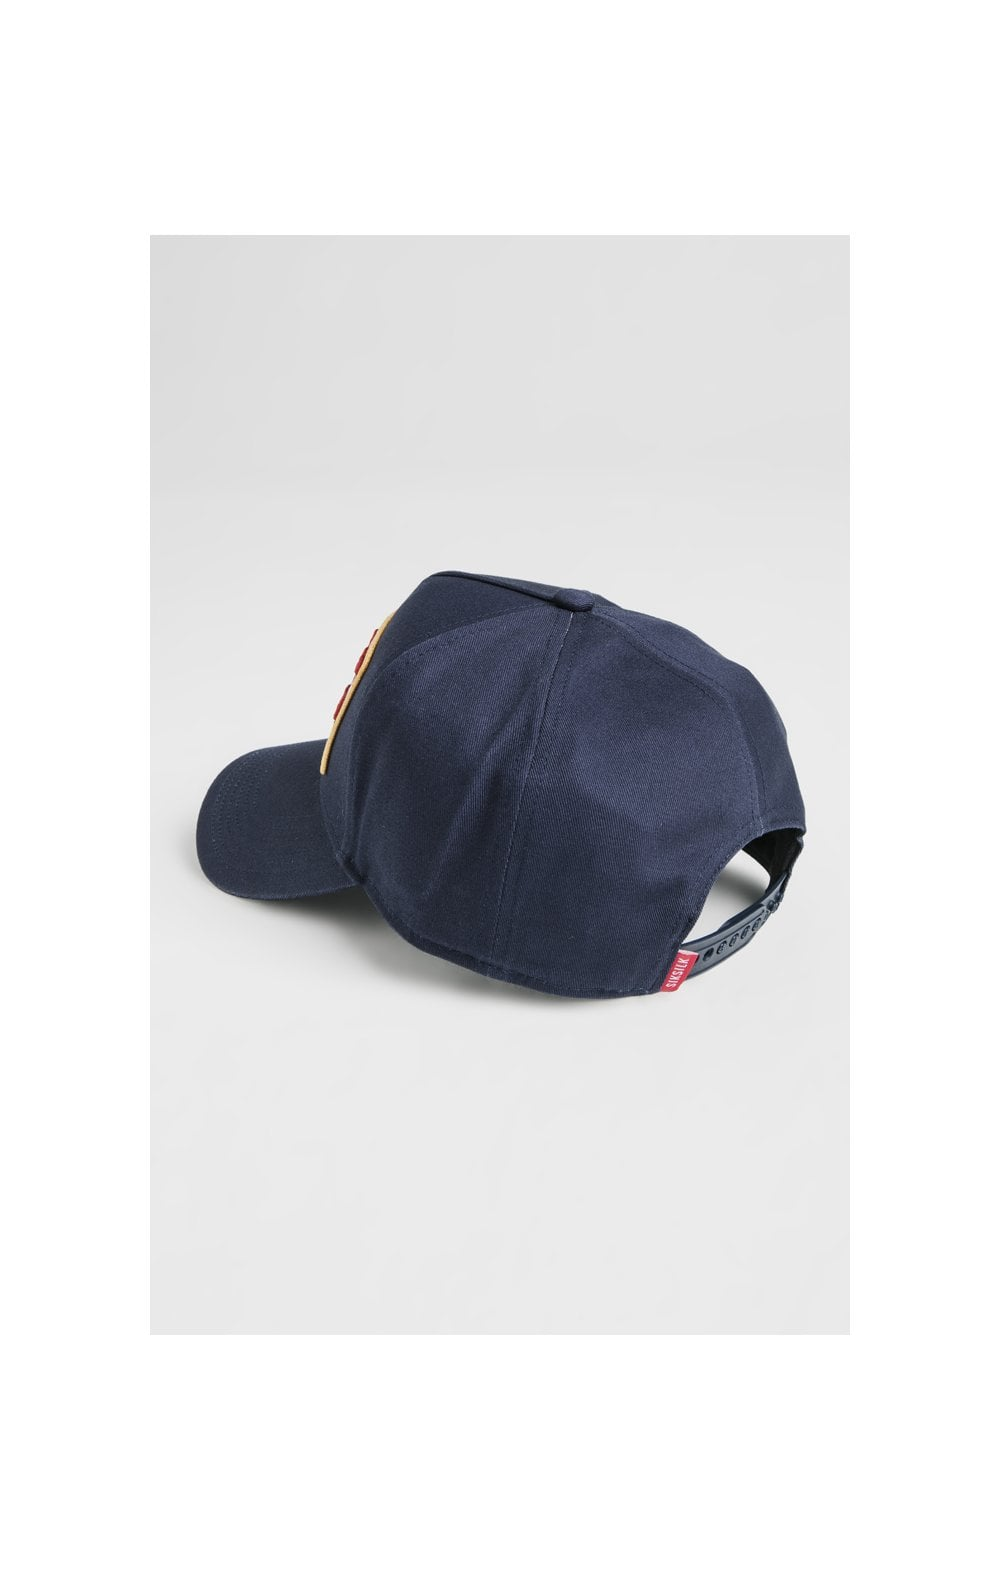 SikSilk Patch Full Trucker - Navy (4)